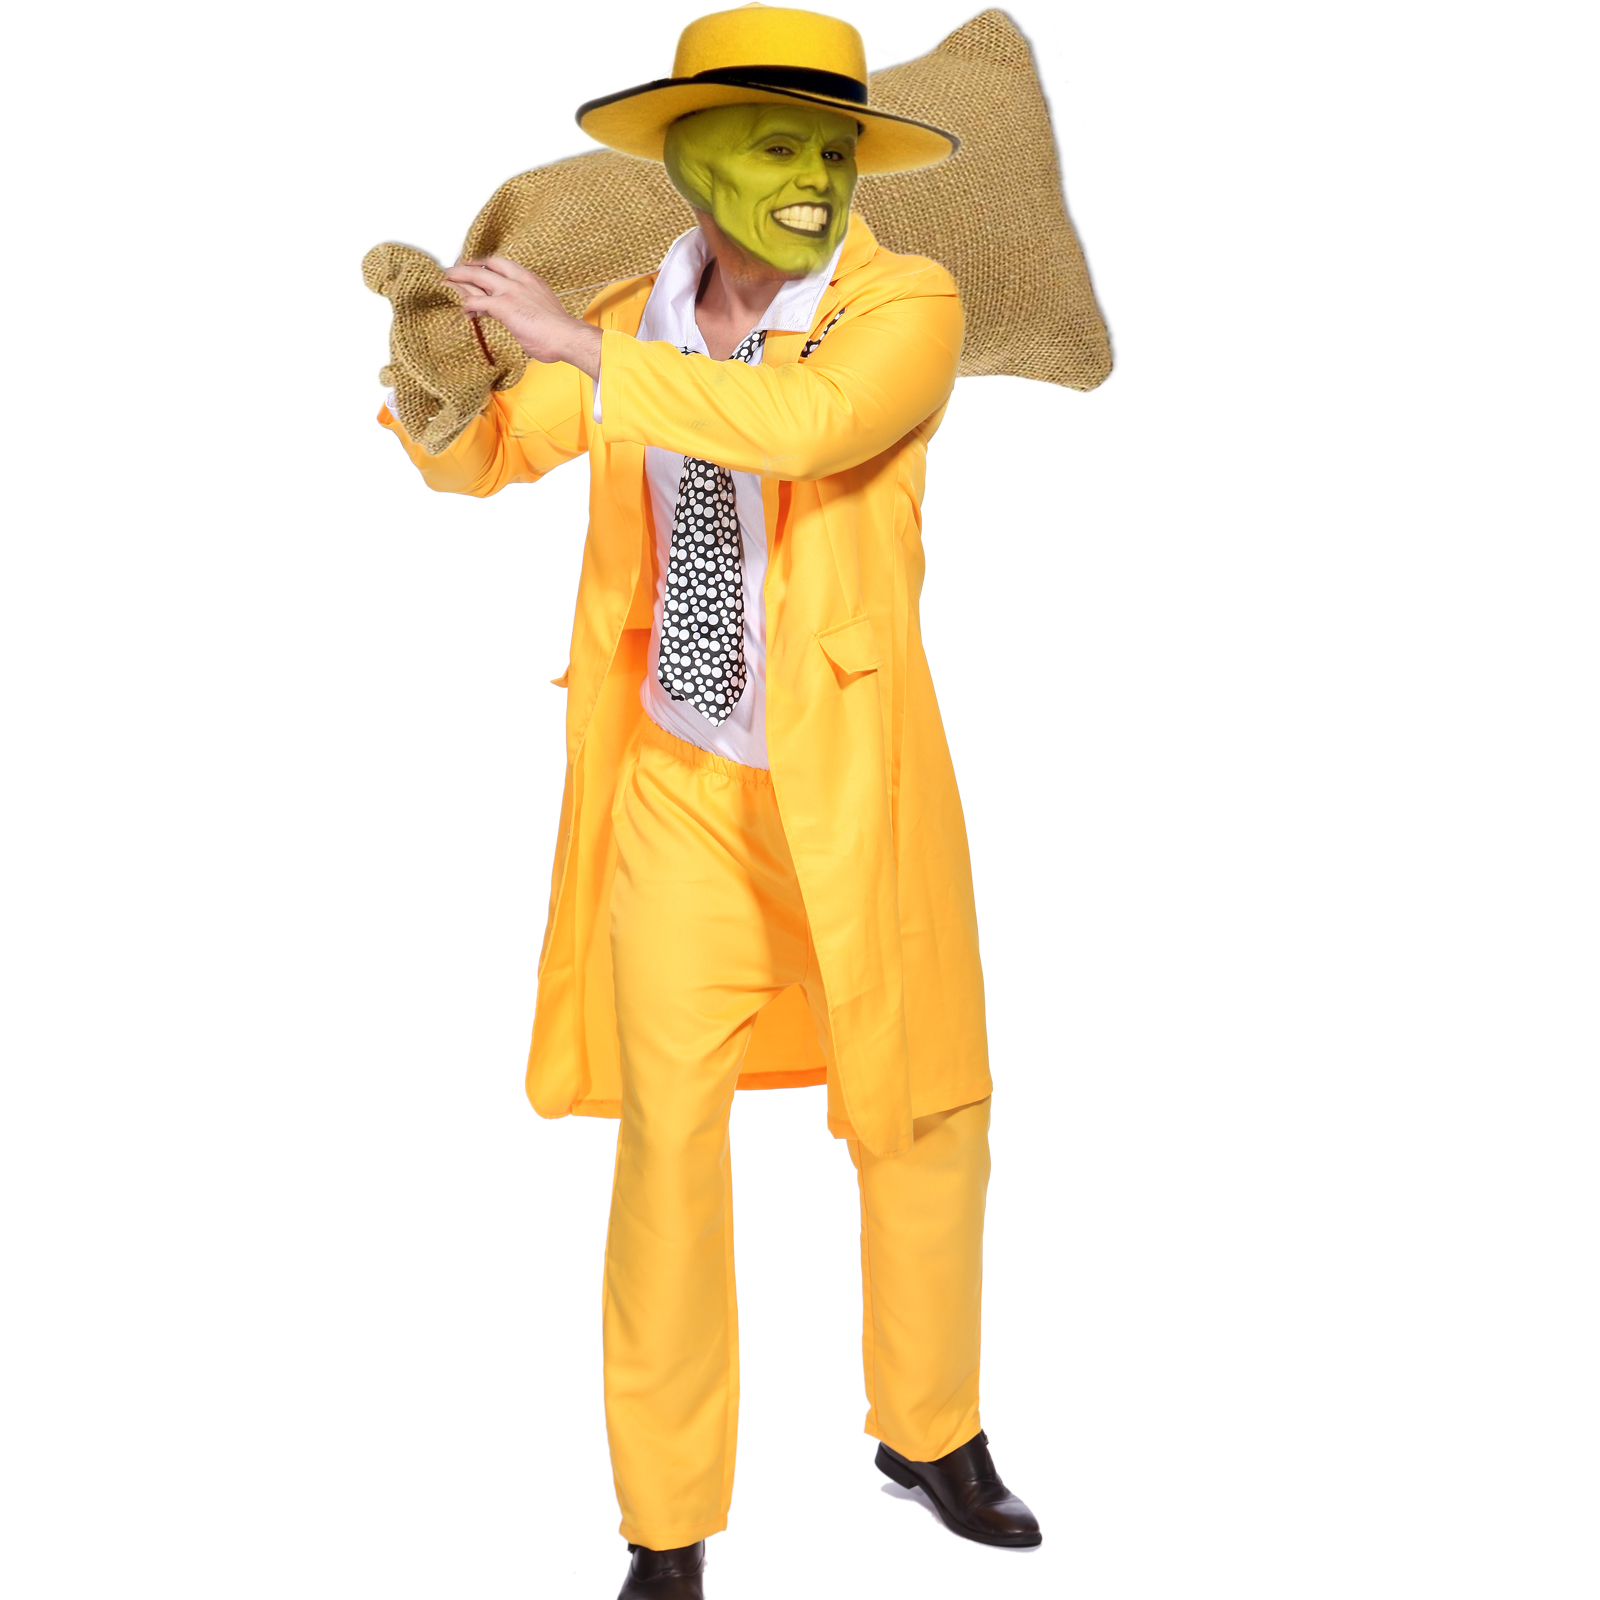 90S ADULT MENS YELLOW GANGSTER ZOOT SUIT THE MASK JIM ... Zoot Suit The Mask